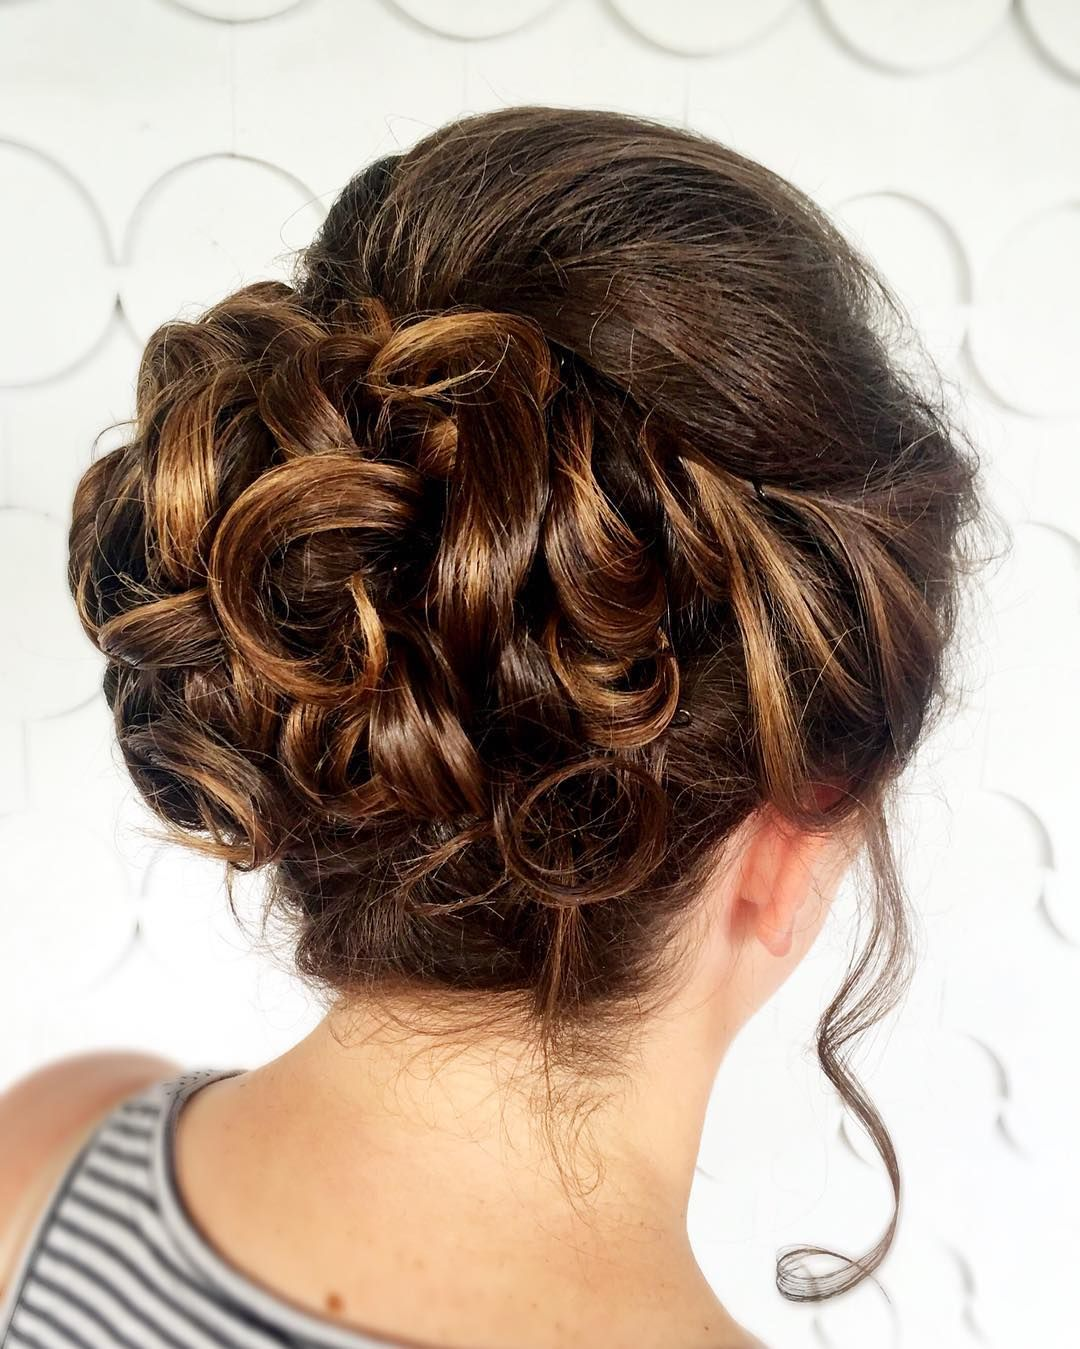 Hairstyle glory by Elena! Soft curls make the most romantic updos!  #updo #gorgeous  #hairstyle #lovely #thatsdarling